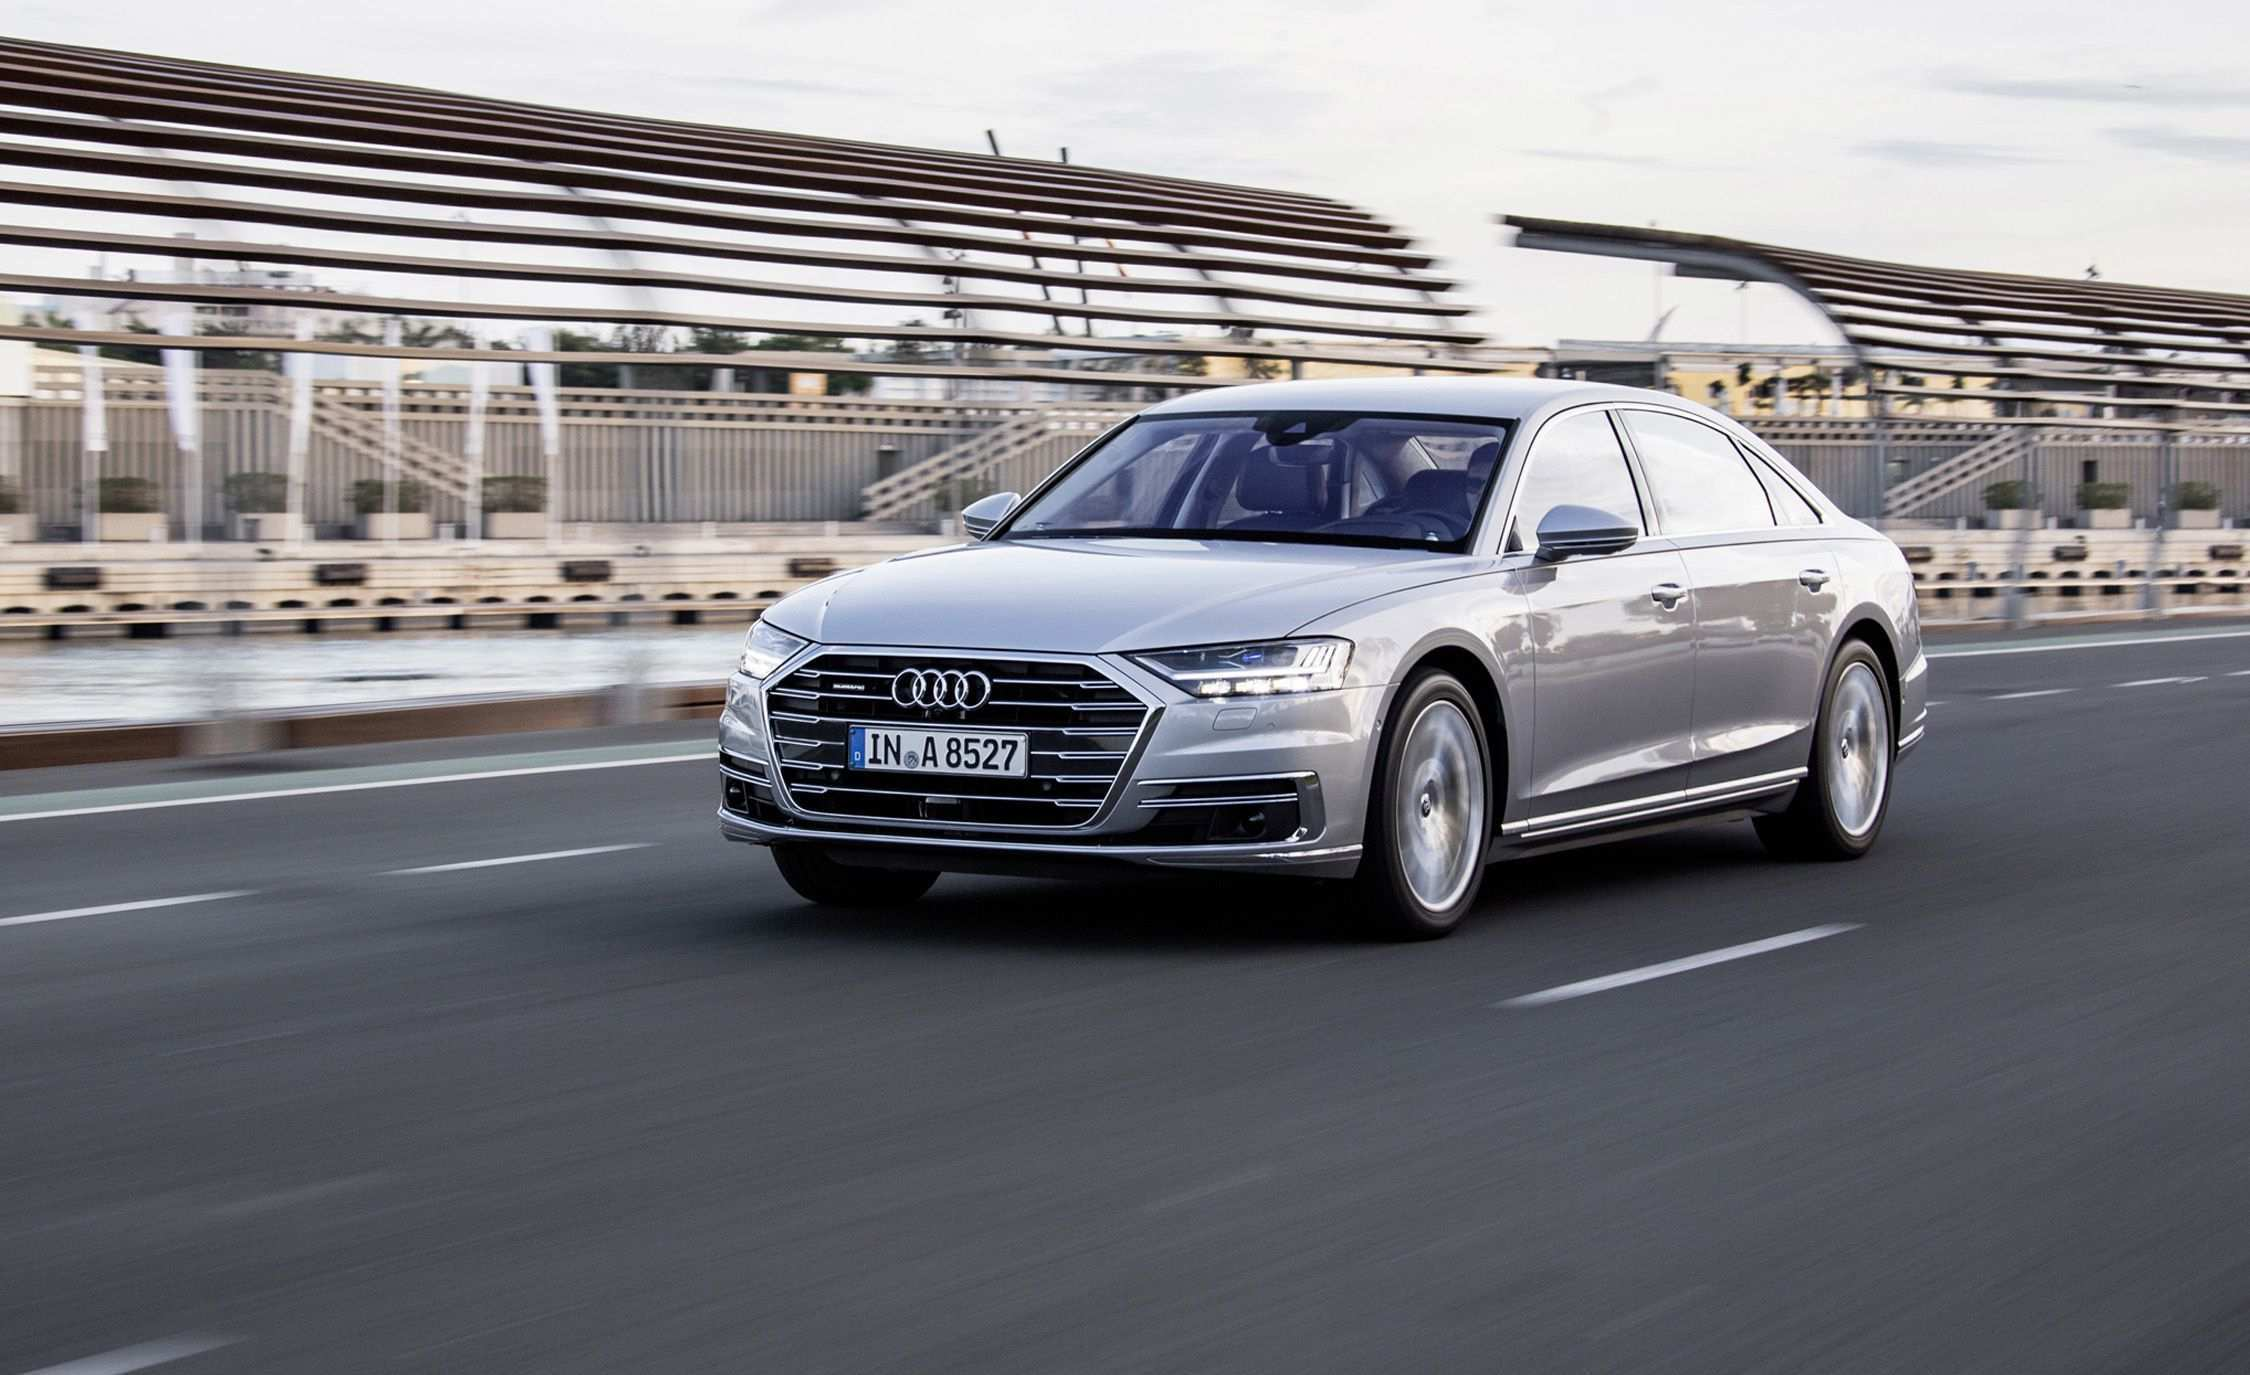 83 Gallery of 2020 Audi A8 L In Usa Prices by 2020 Audi A8 L In Usa